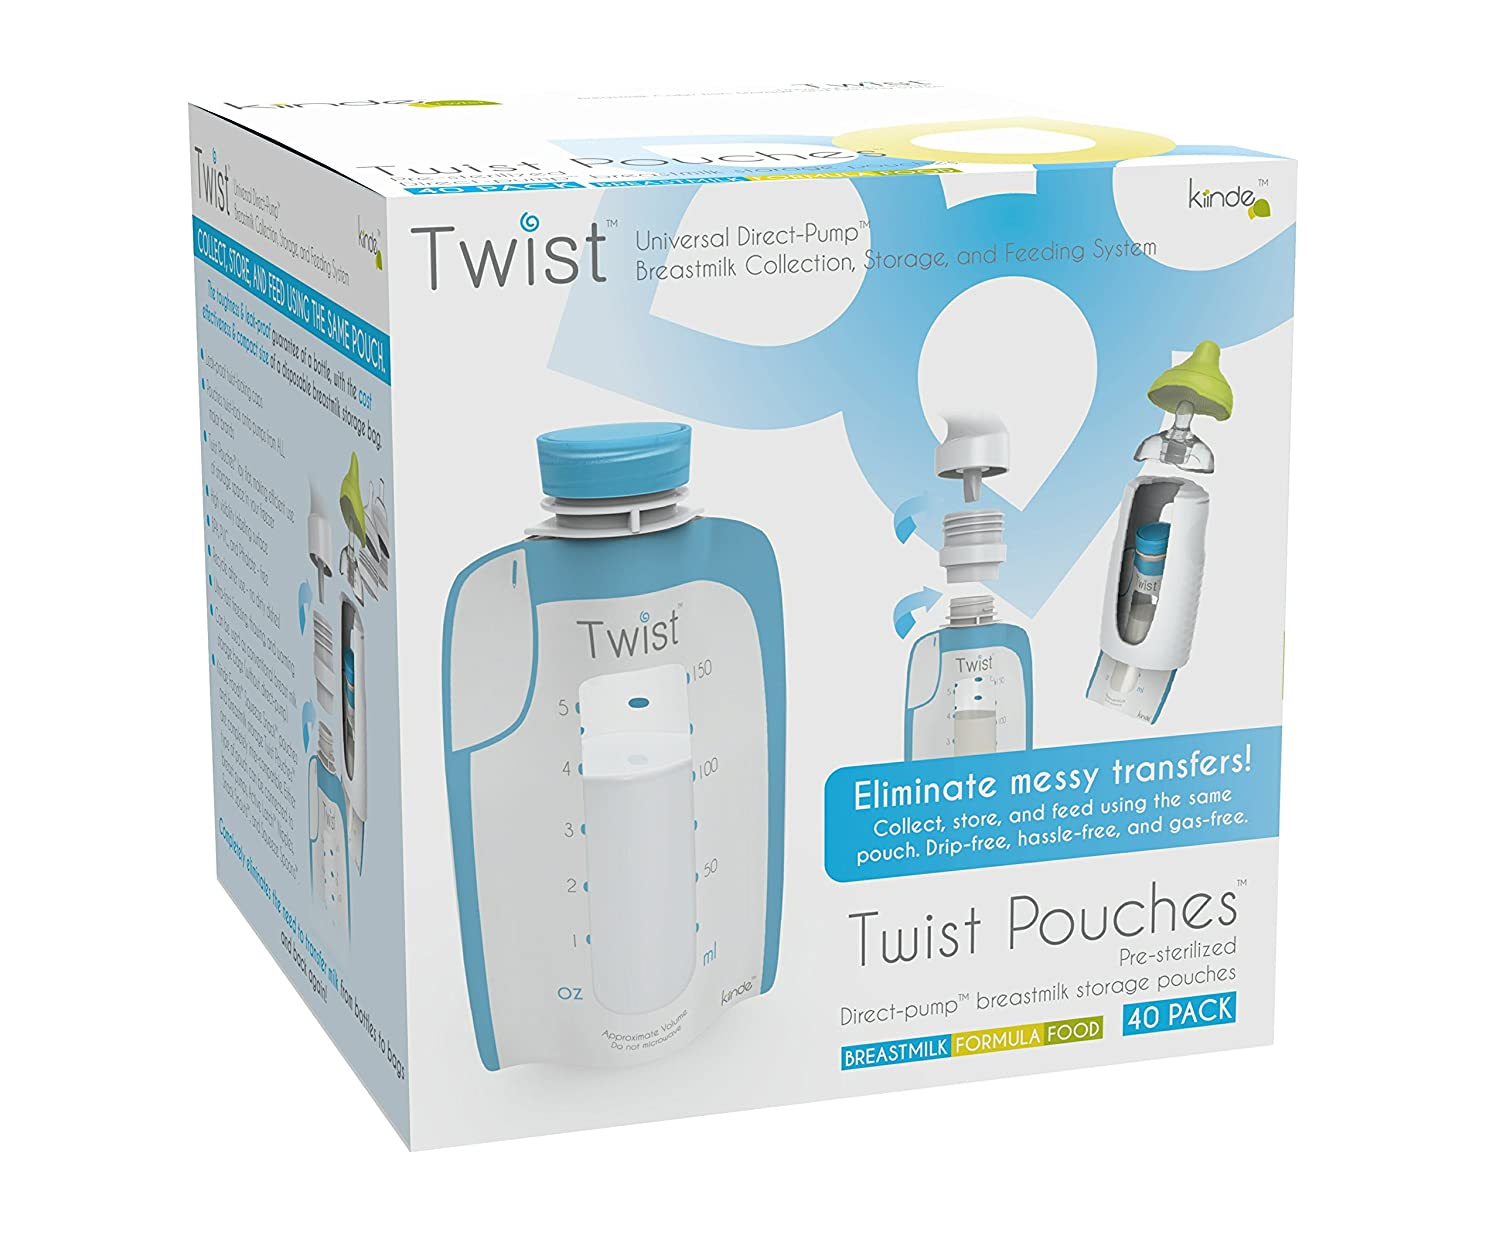 Twist Pouches - Direct-pump, Twist-cap Breastmilk Storage Bags - 40 Count (includes caps) Kiinde